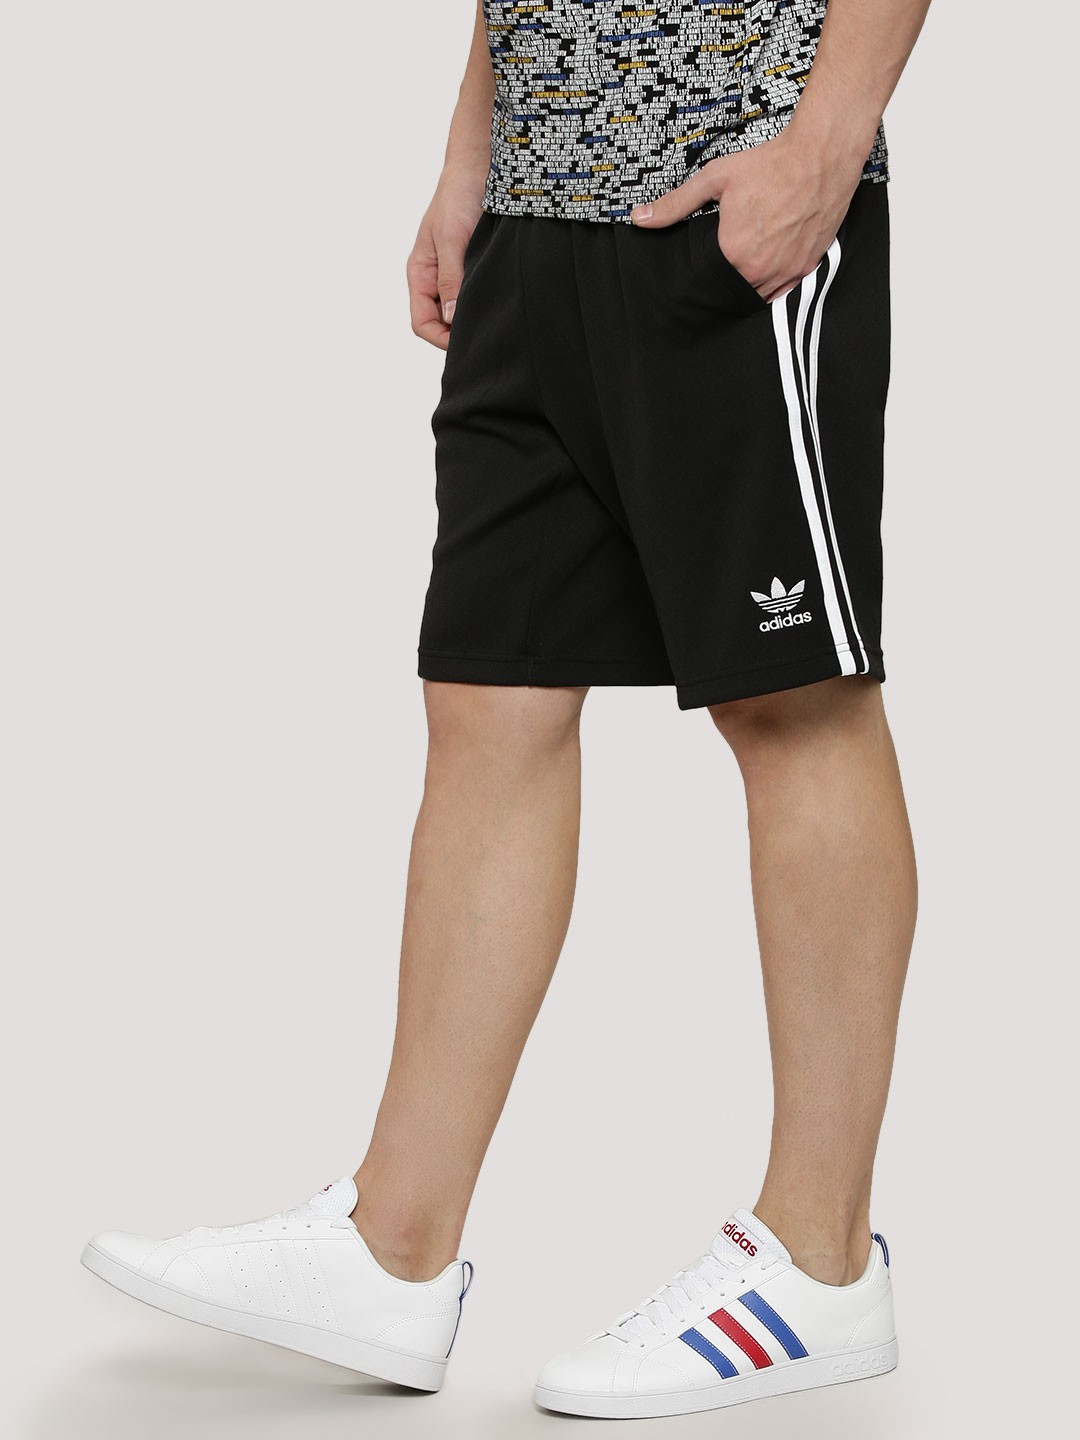 low priced 393de 7ab7c Buy Adidas Originals Black Superstar Shorts for Men Online ...